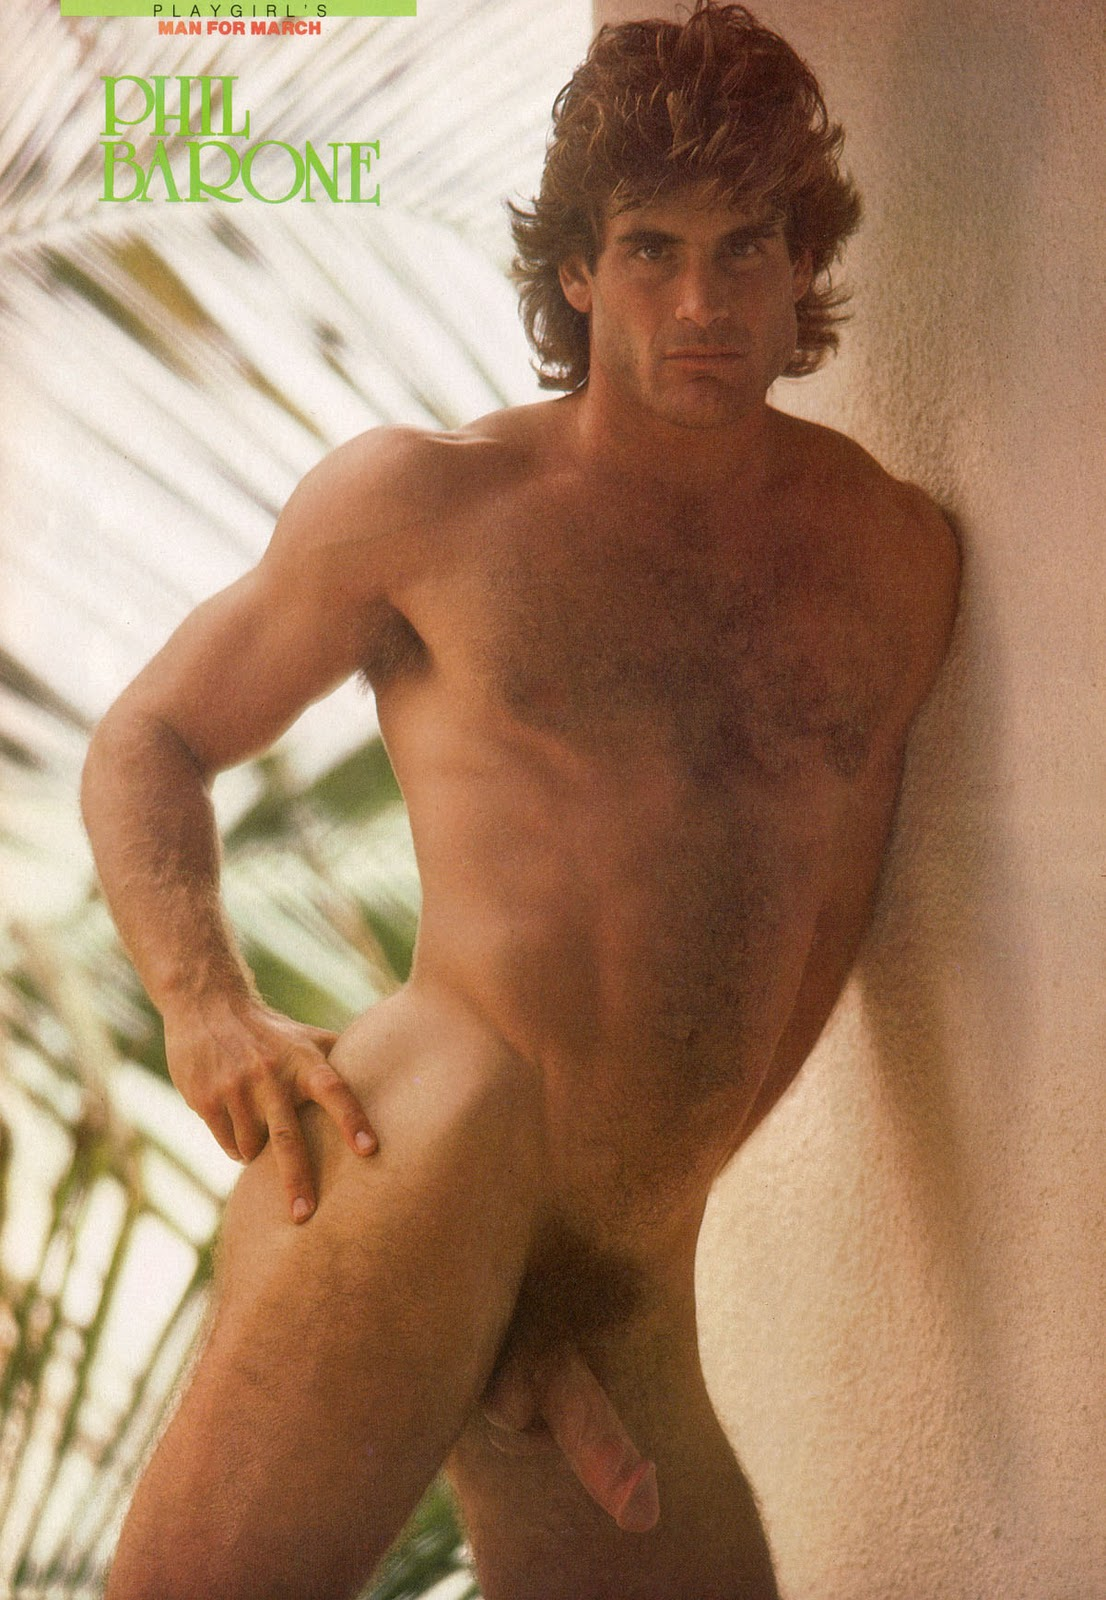 mythulinity retromale dept playgirl magazine phil barone